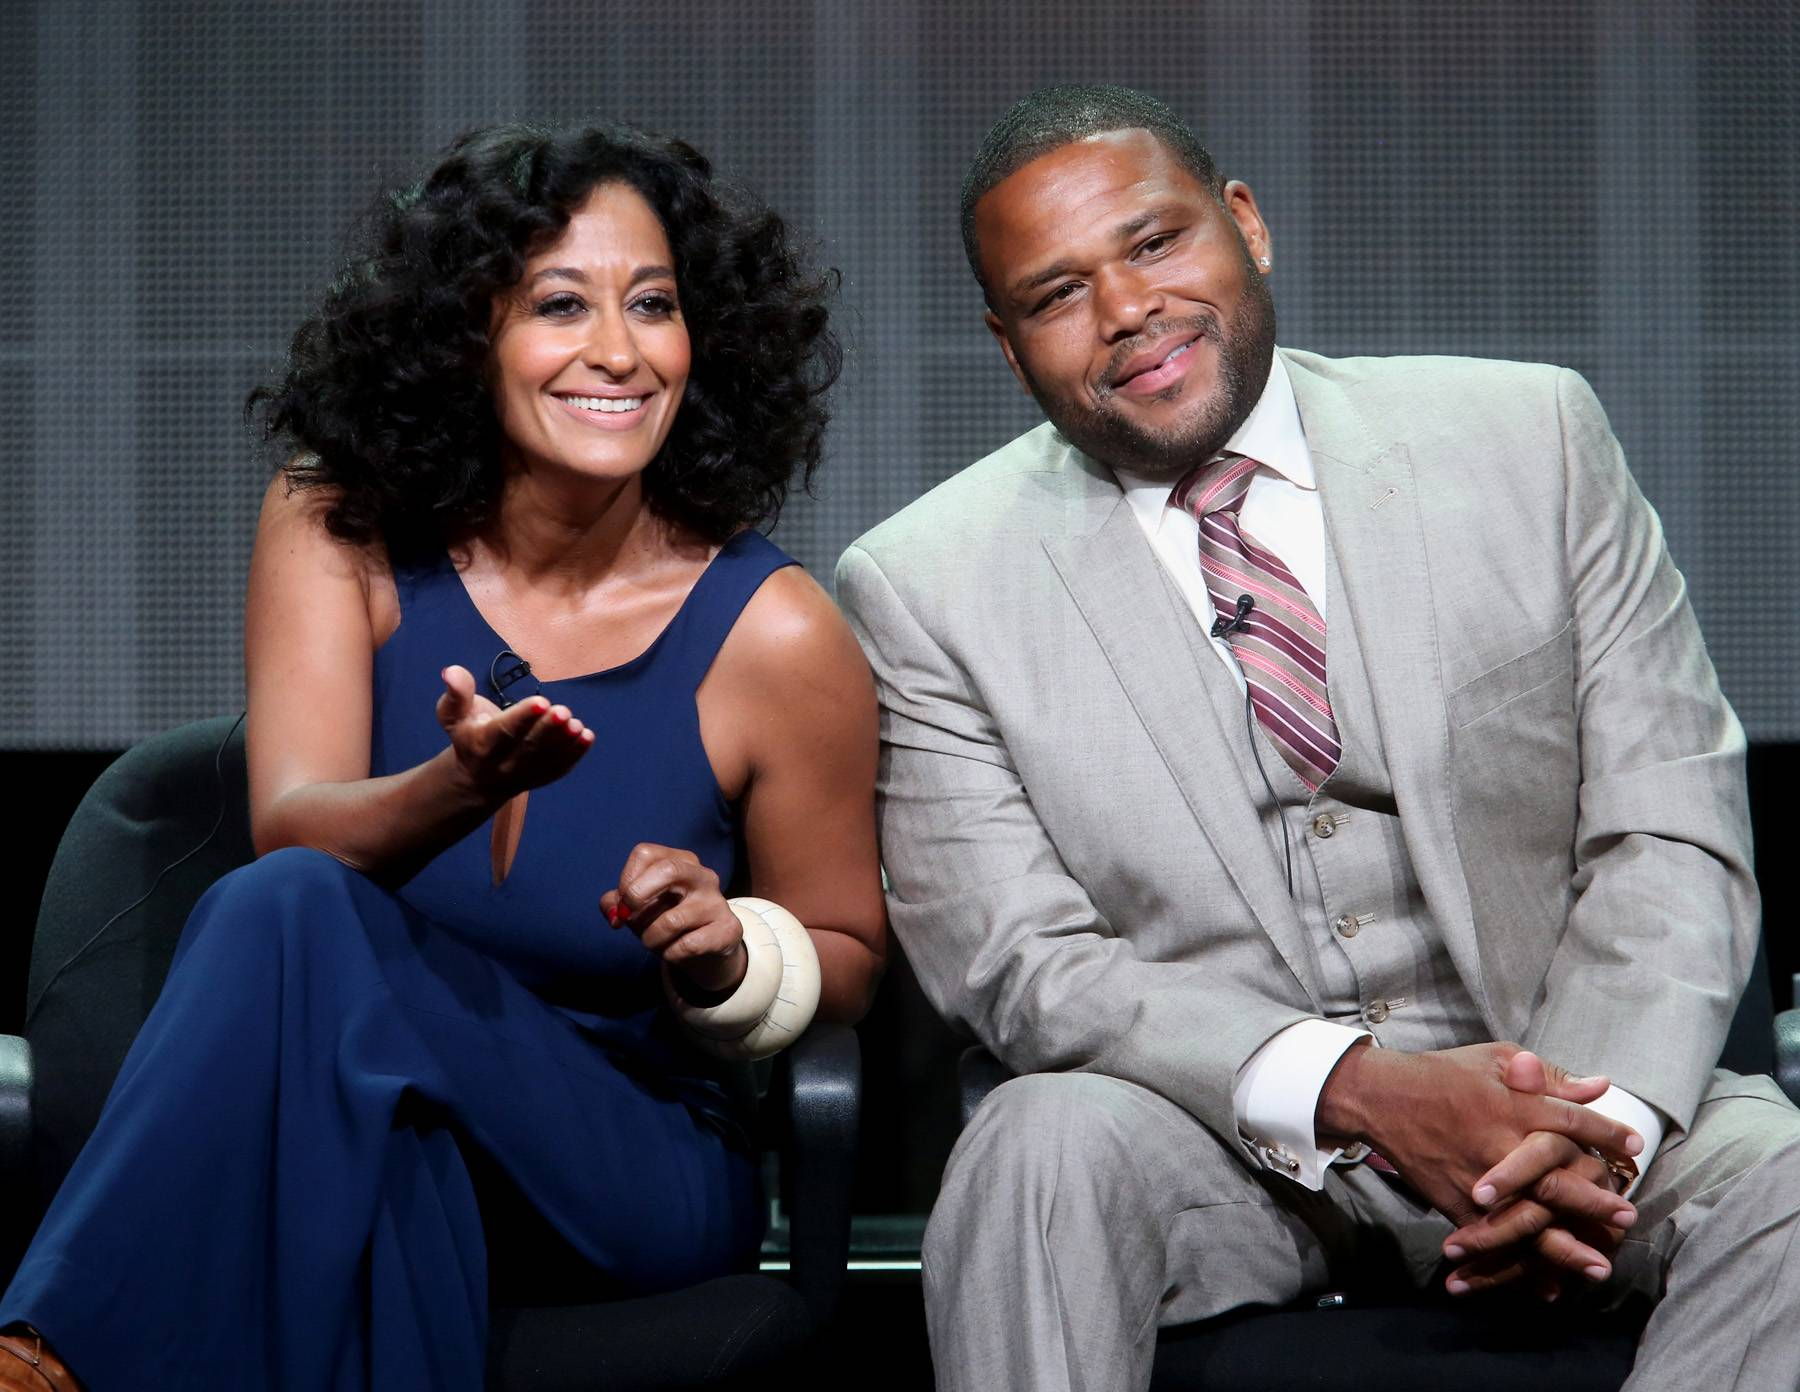 071614-celebs-out-tracee-ellis-ross-anthony-anderson.jpg